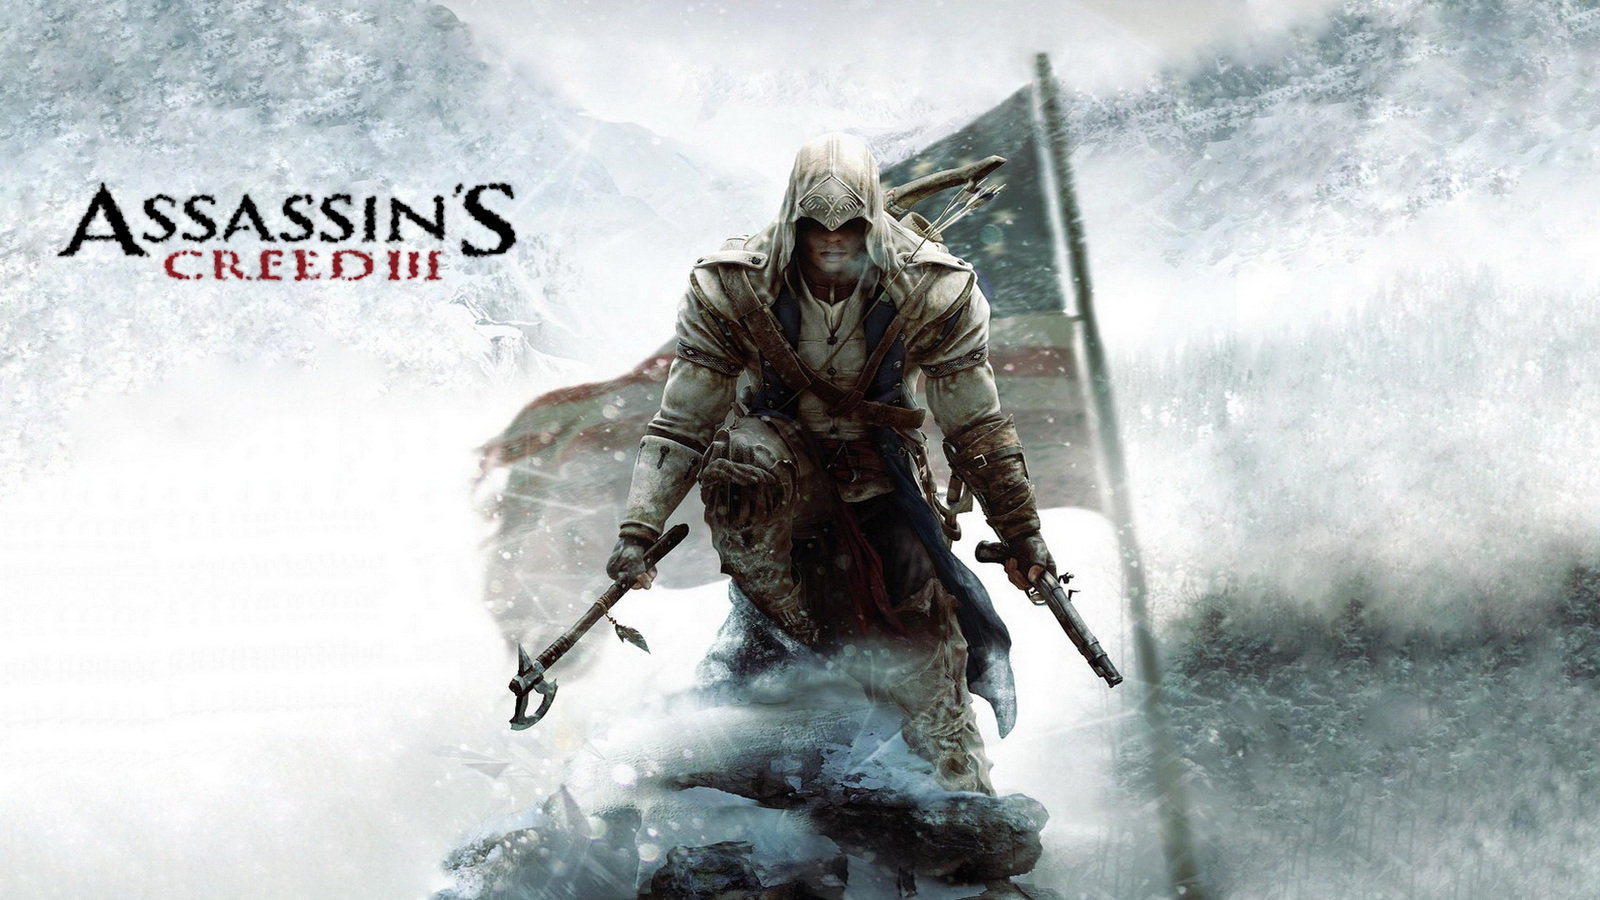 Eyesurfing Assassins Creed 3 Wallpaper 1600x900